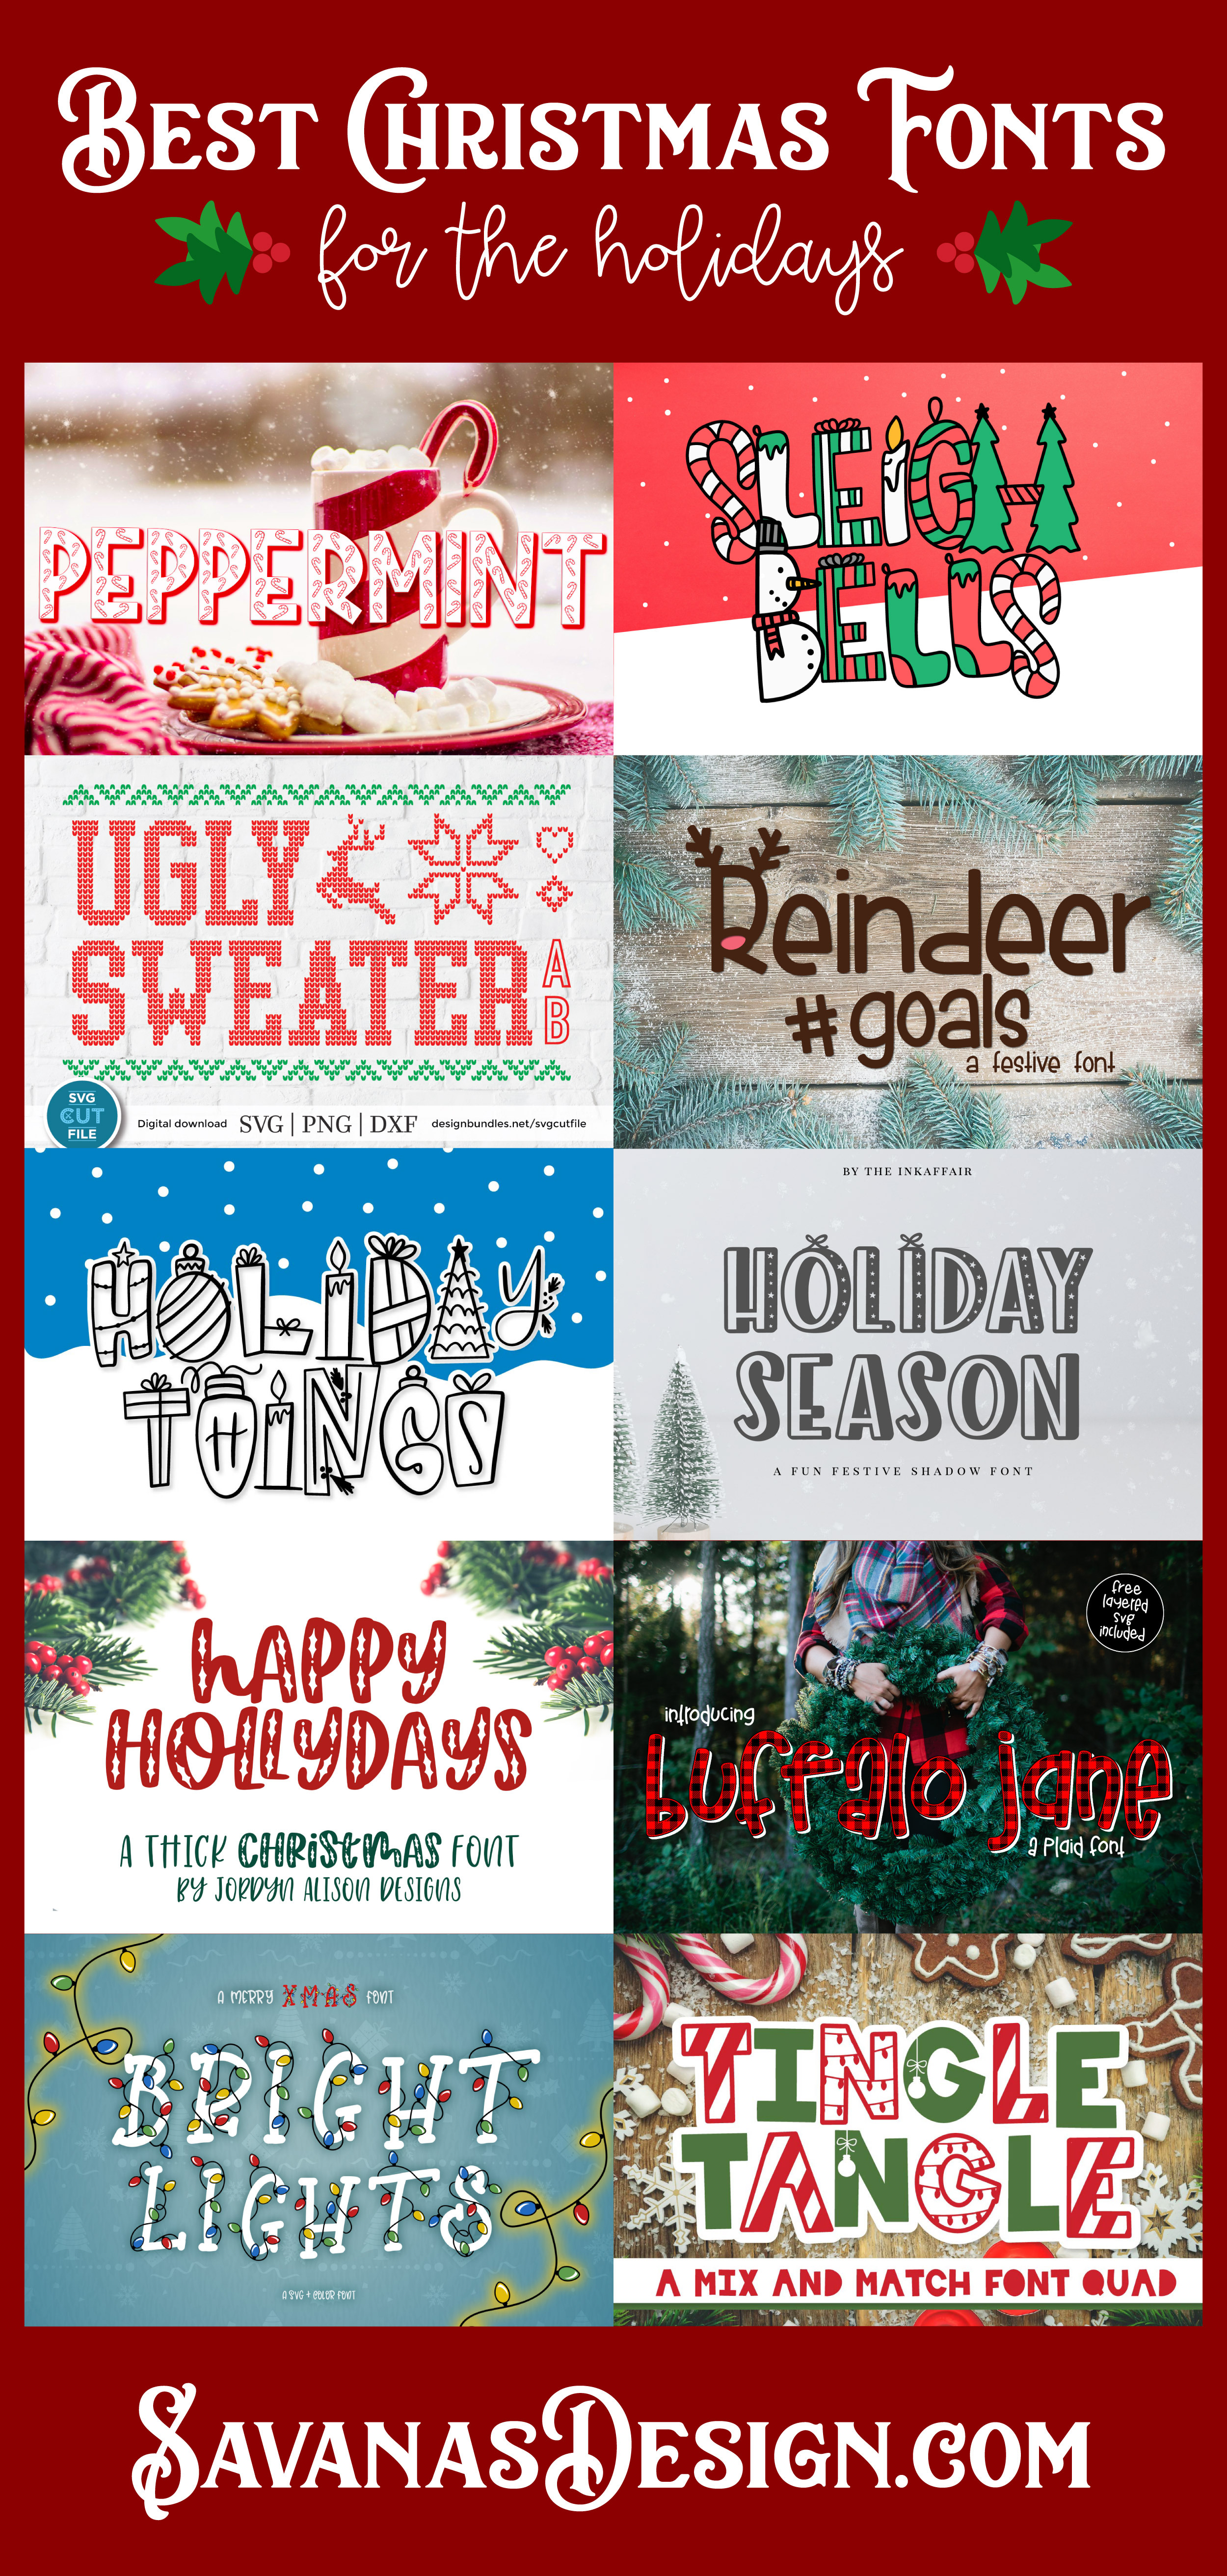 Best Christmas Fonts for the Holidays